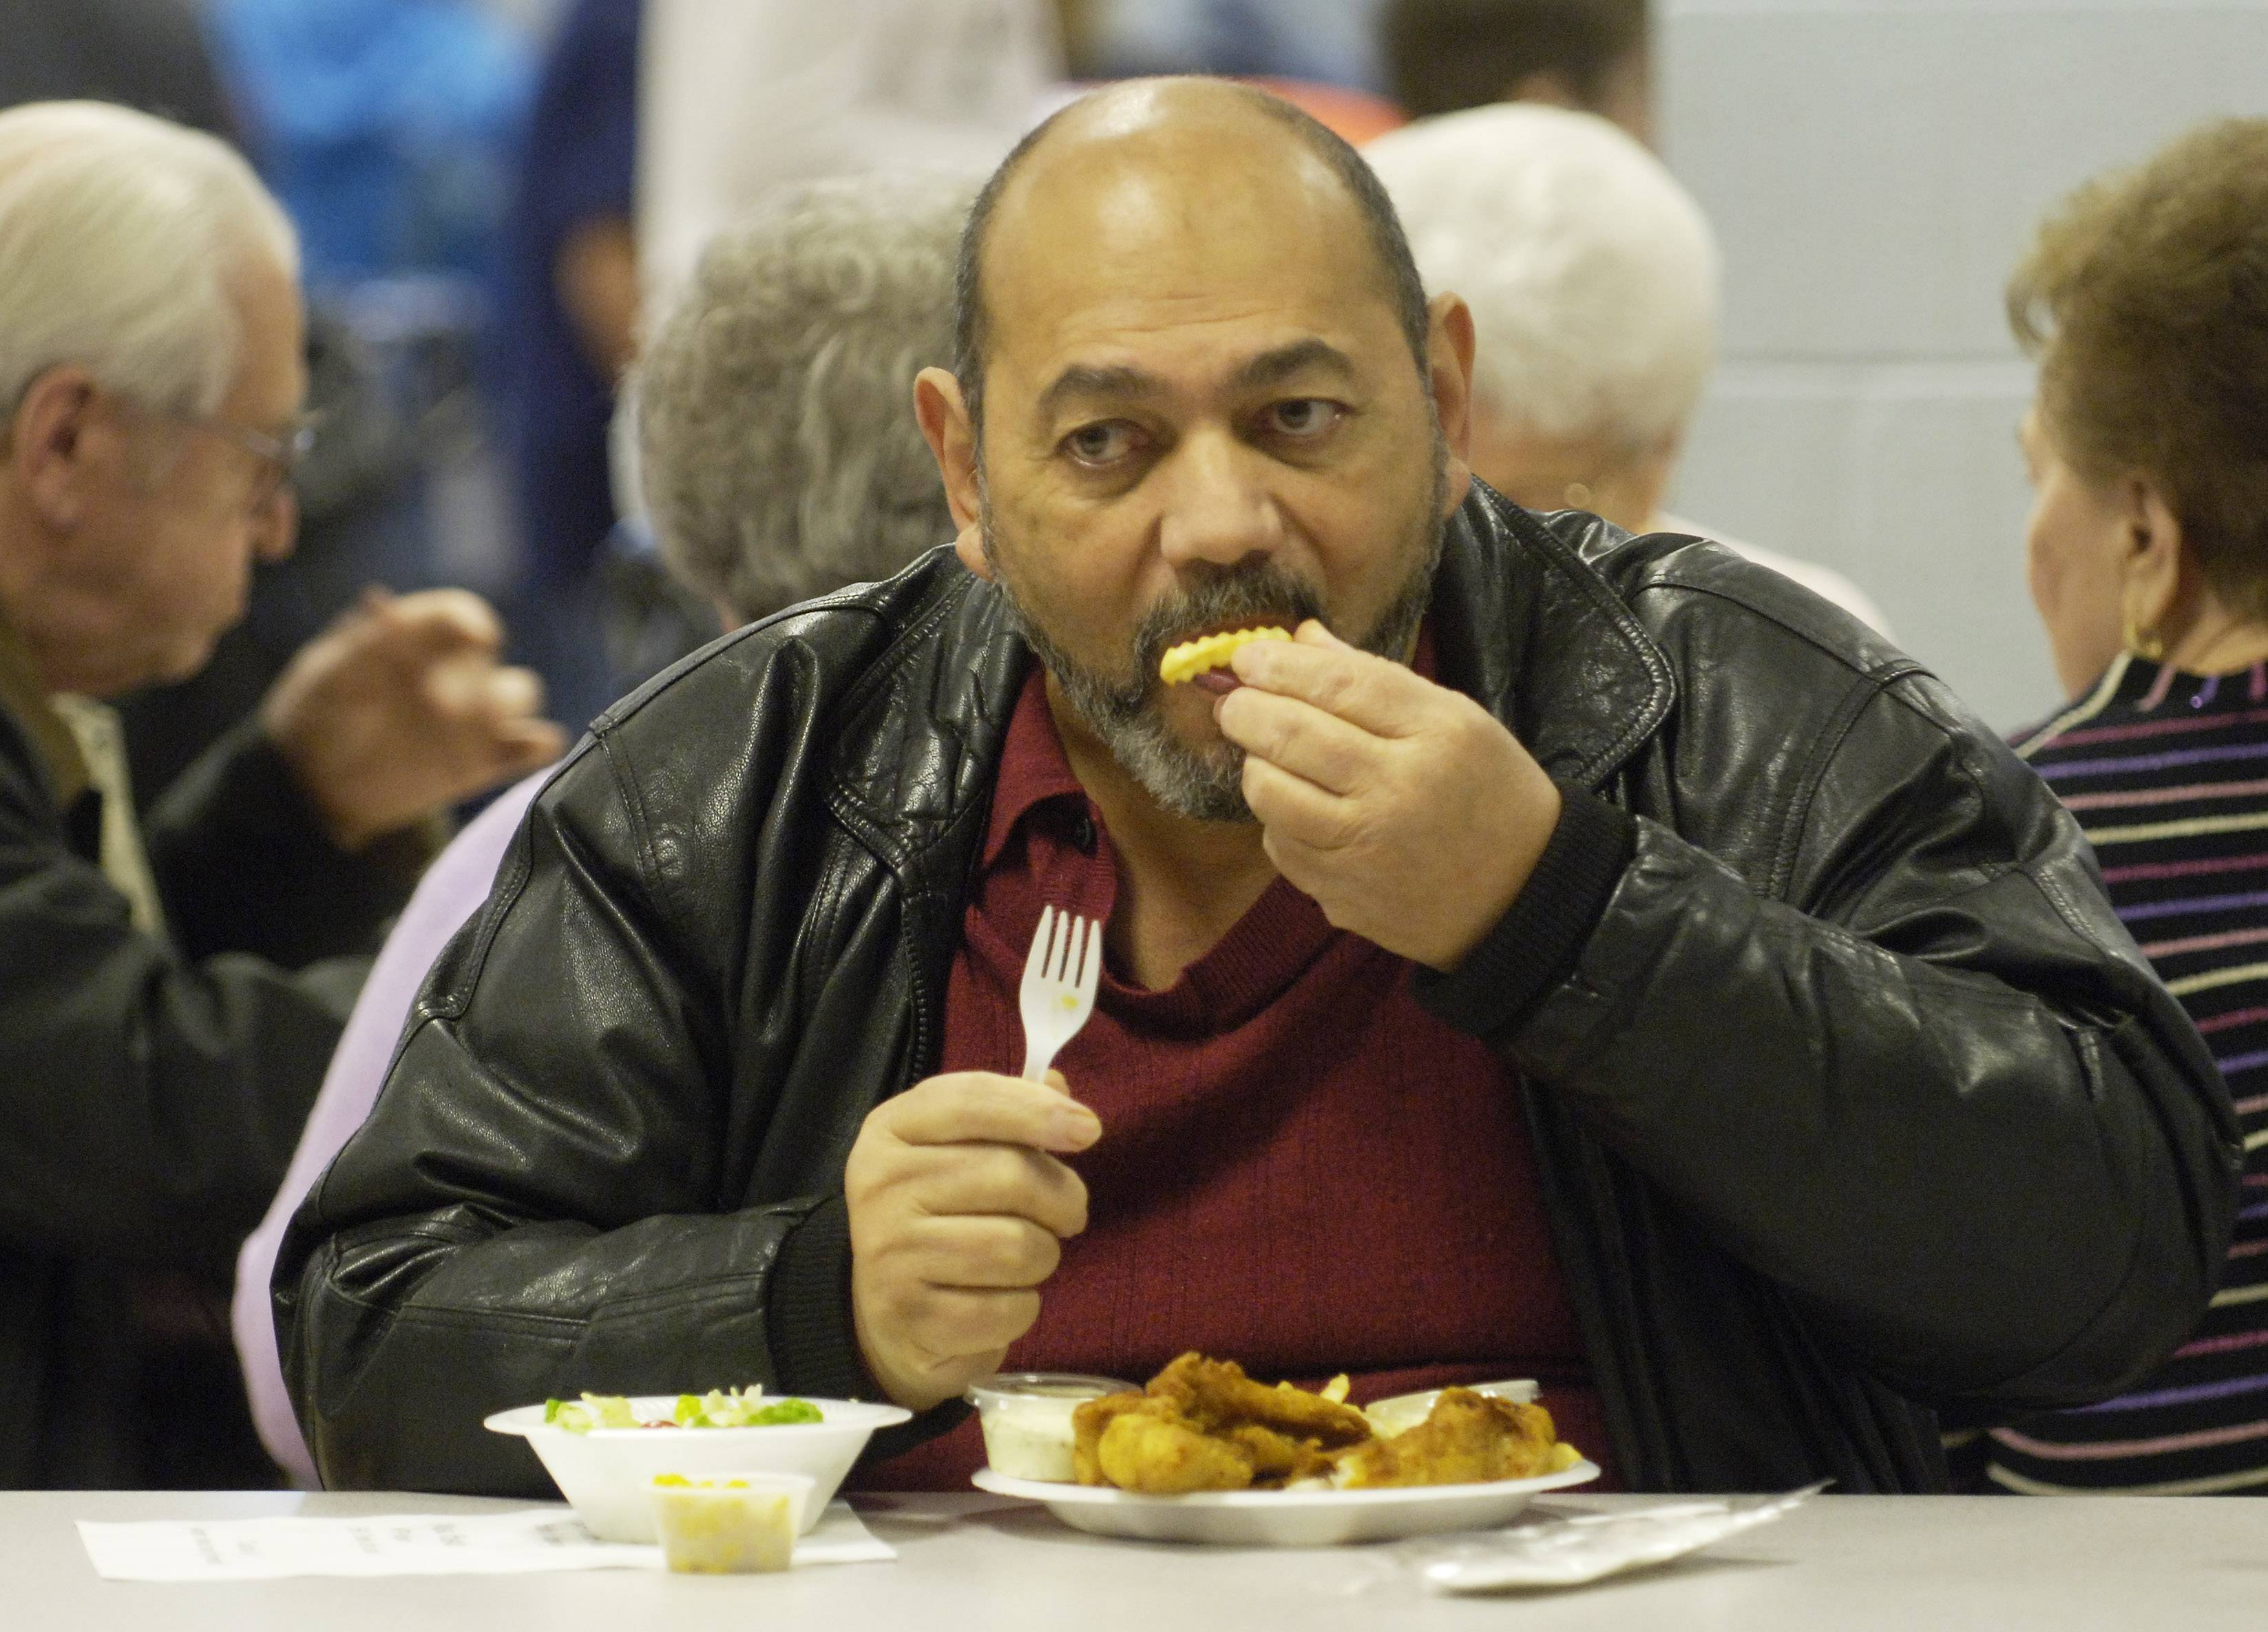 Friday night fish frys are a popular choice in the Fox Valley during Lent.